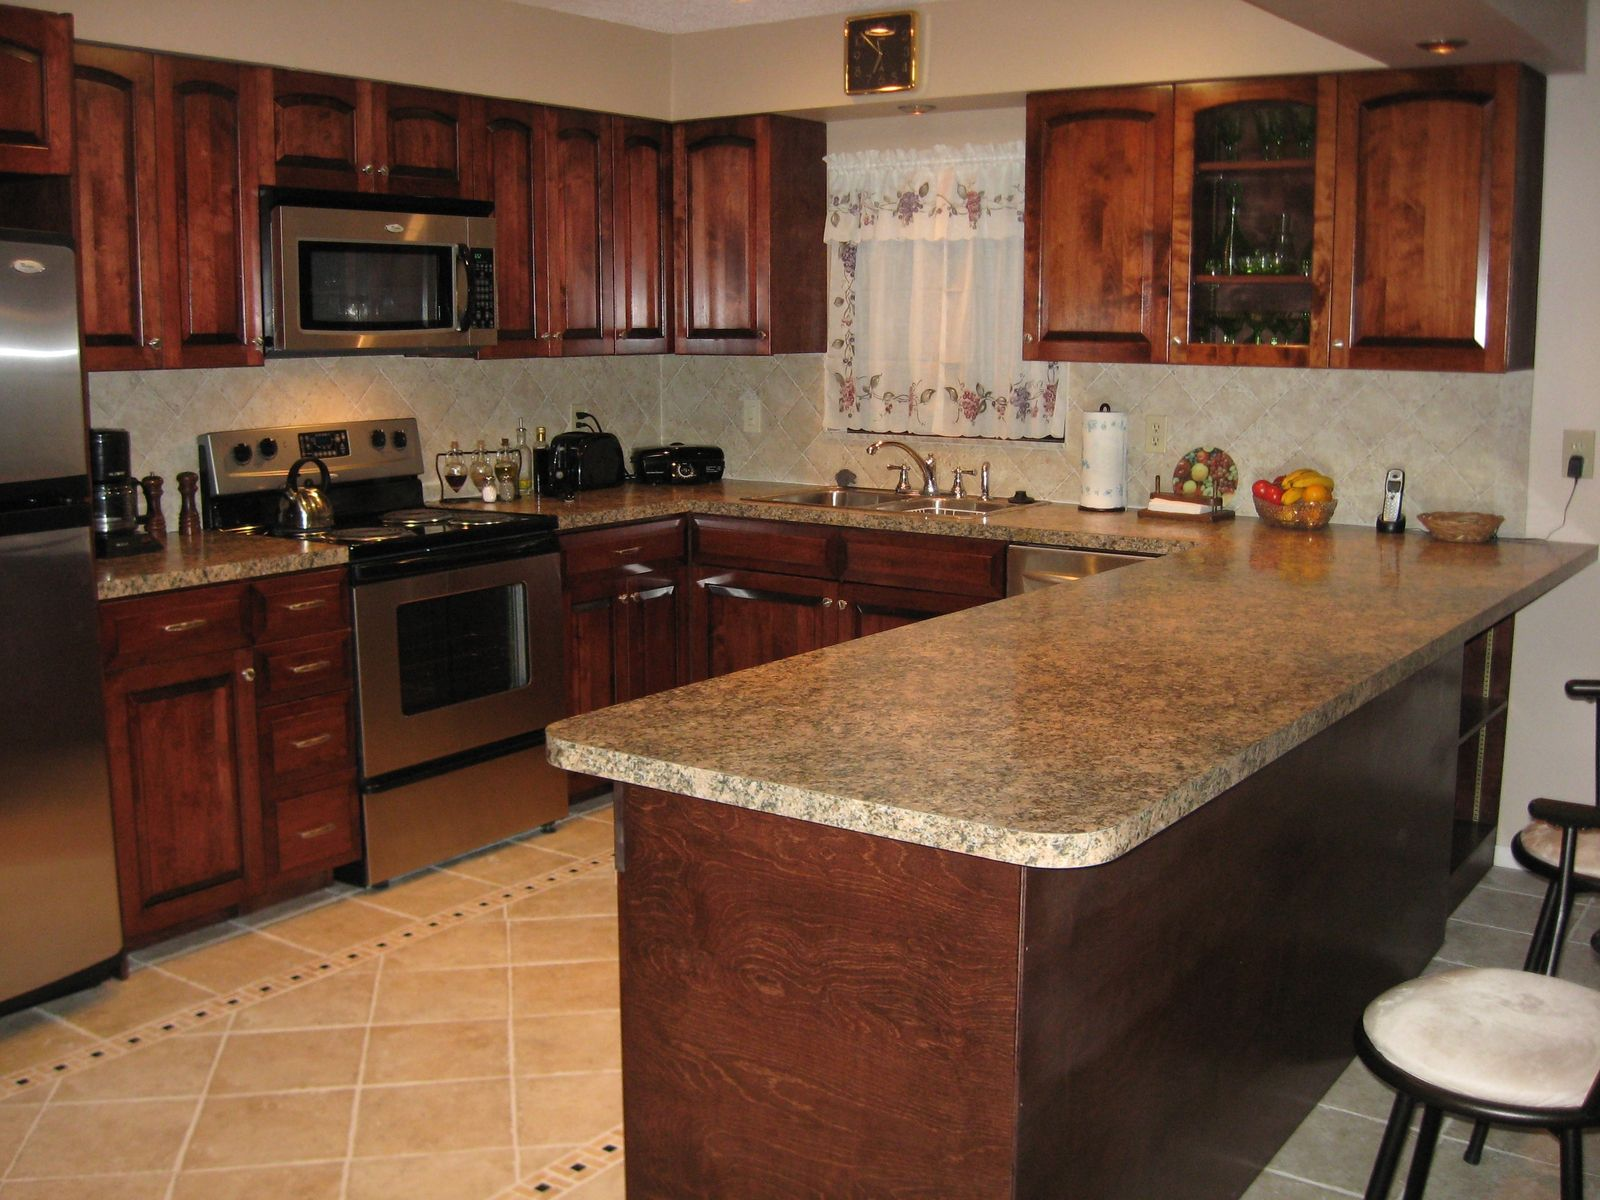 Handmade birch kitchen by gideon 39 s cabinet trim for Arch kitchen cabinets